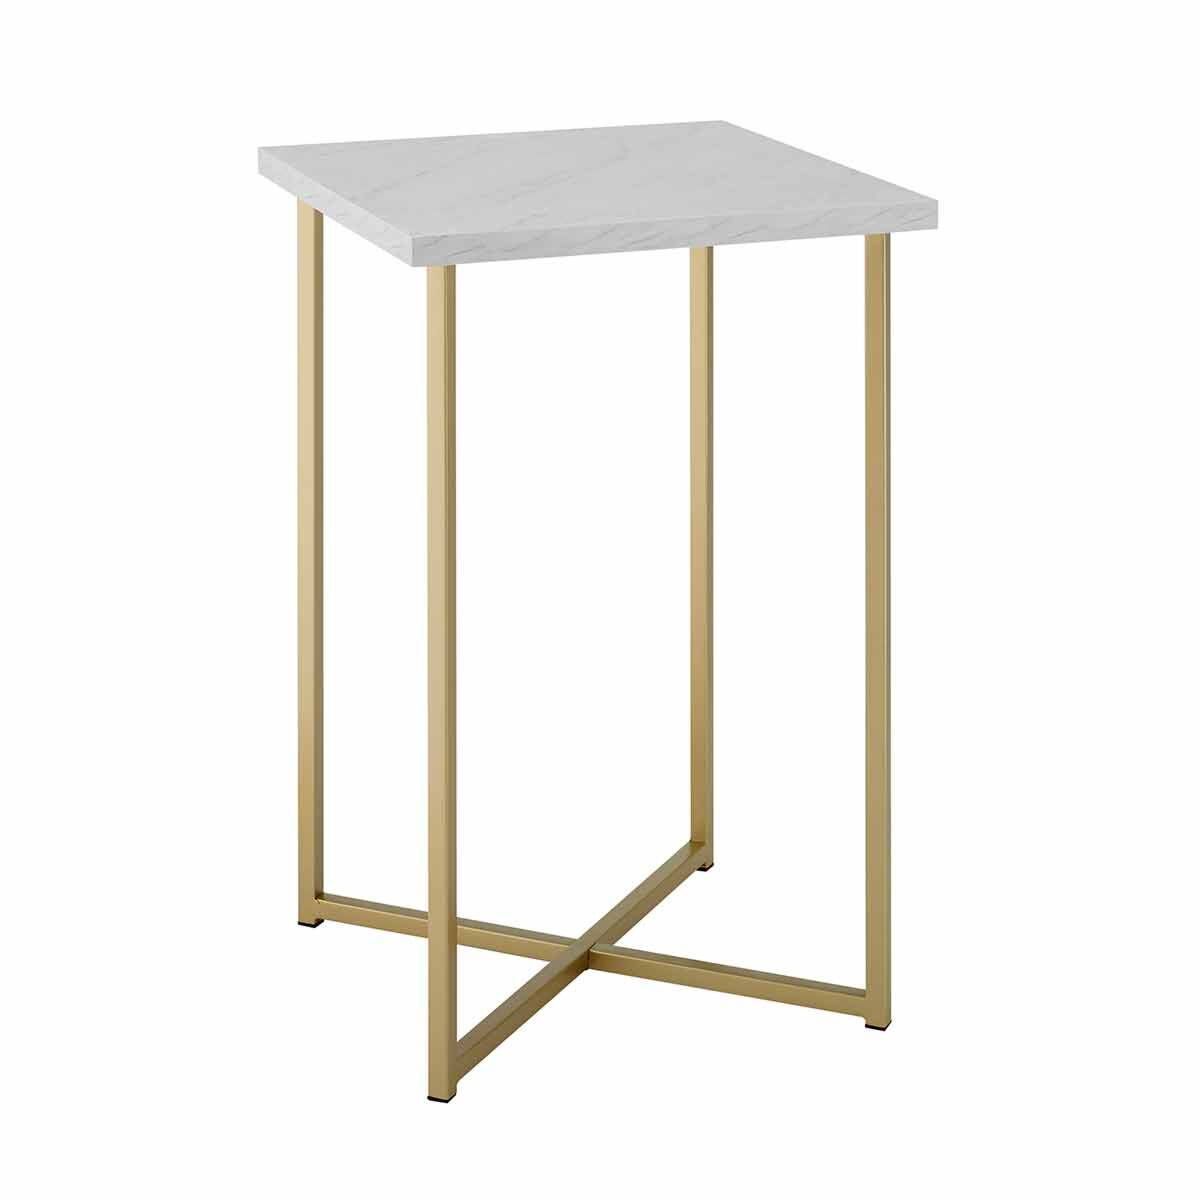 Seattle Modern Square Side Table with Gold Legs White